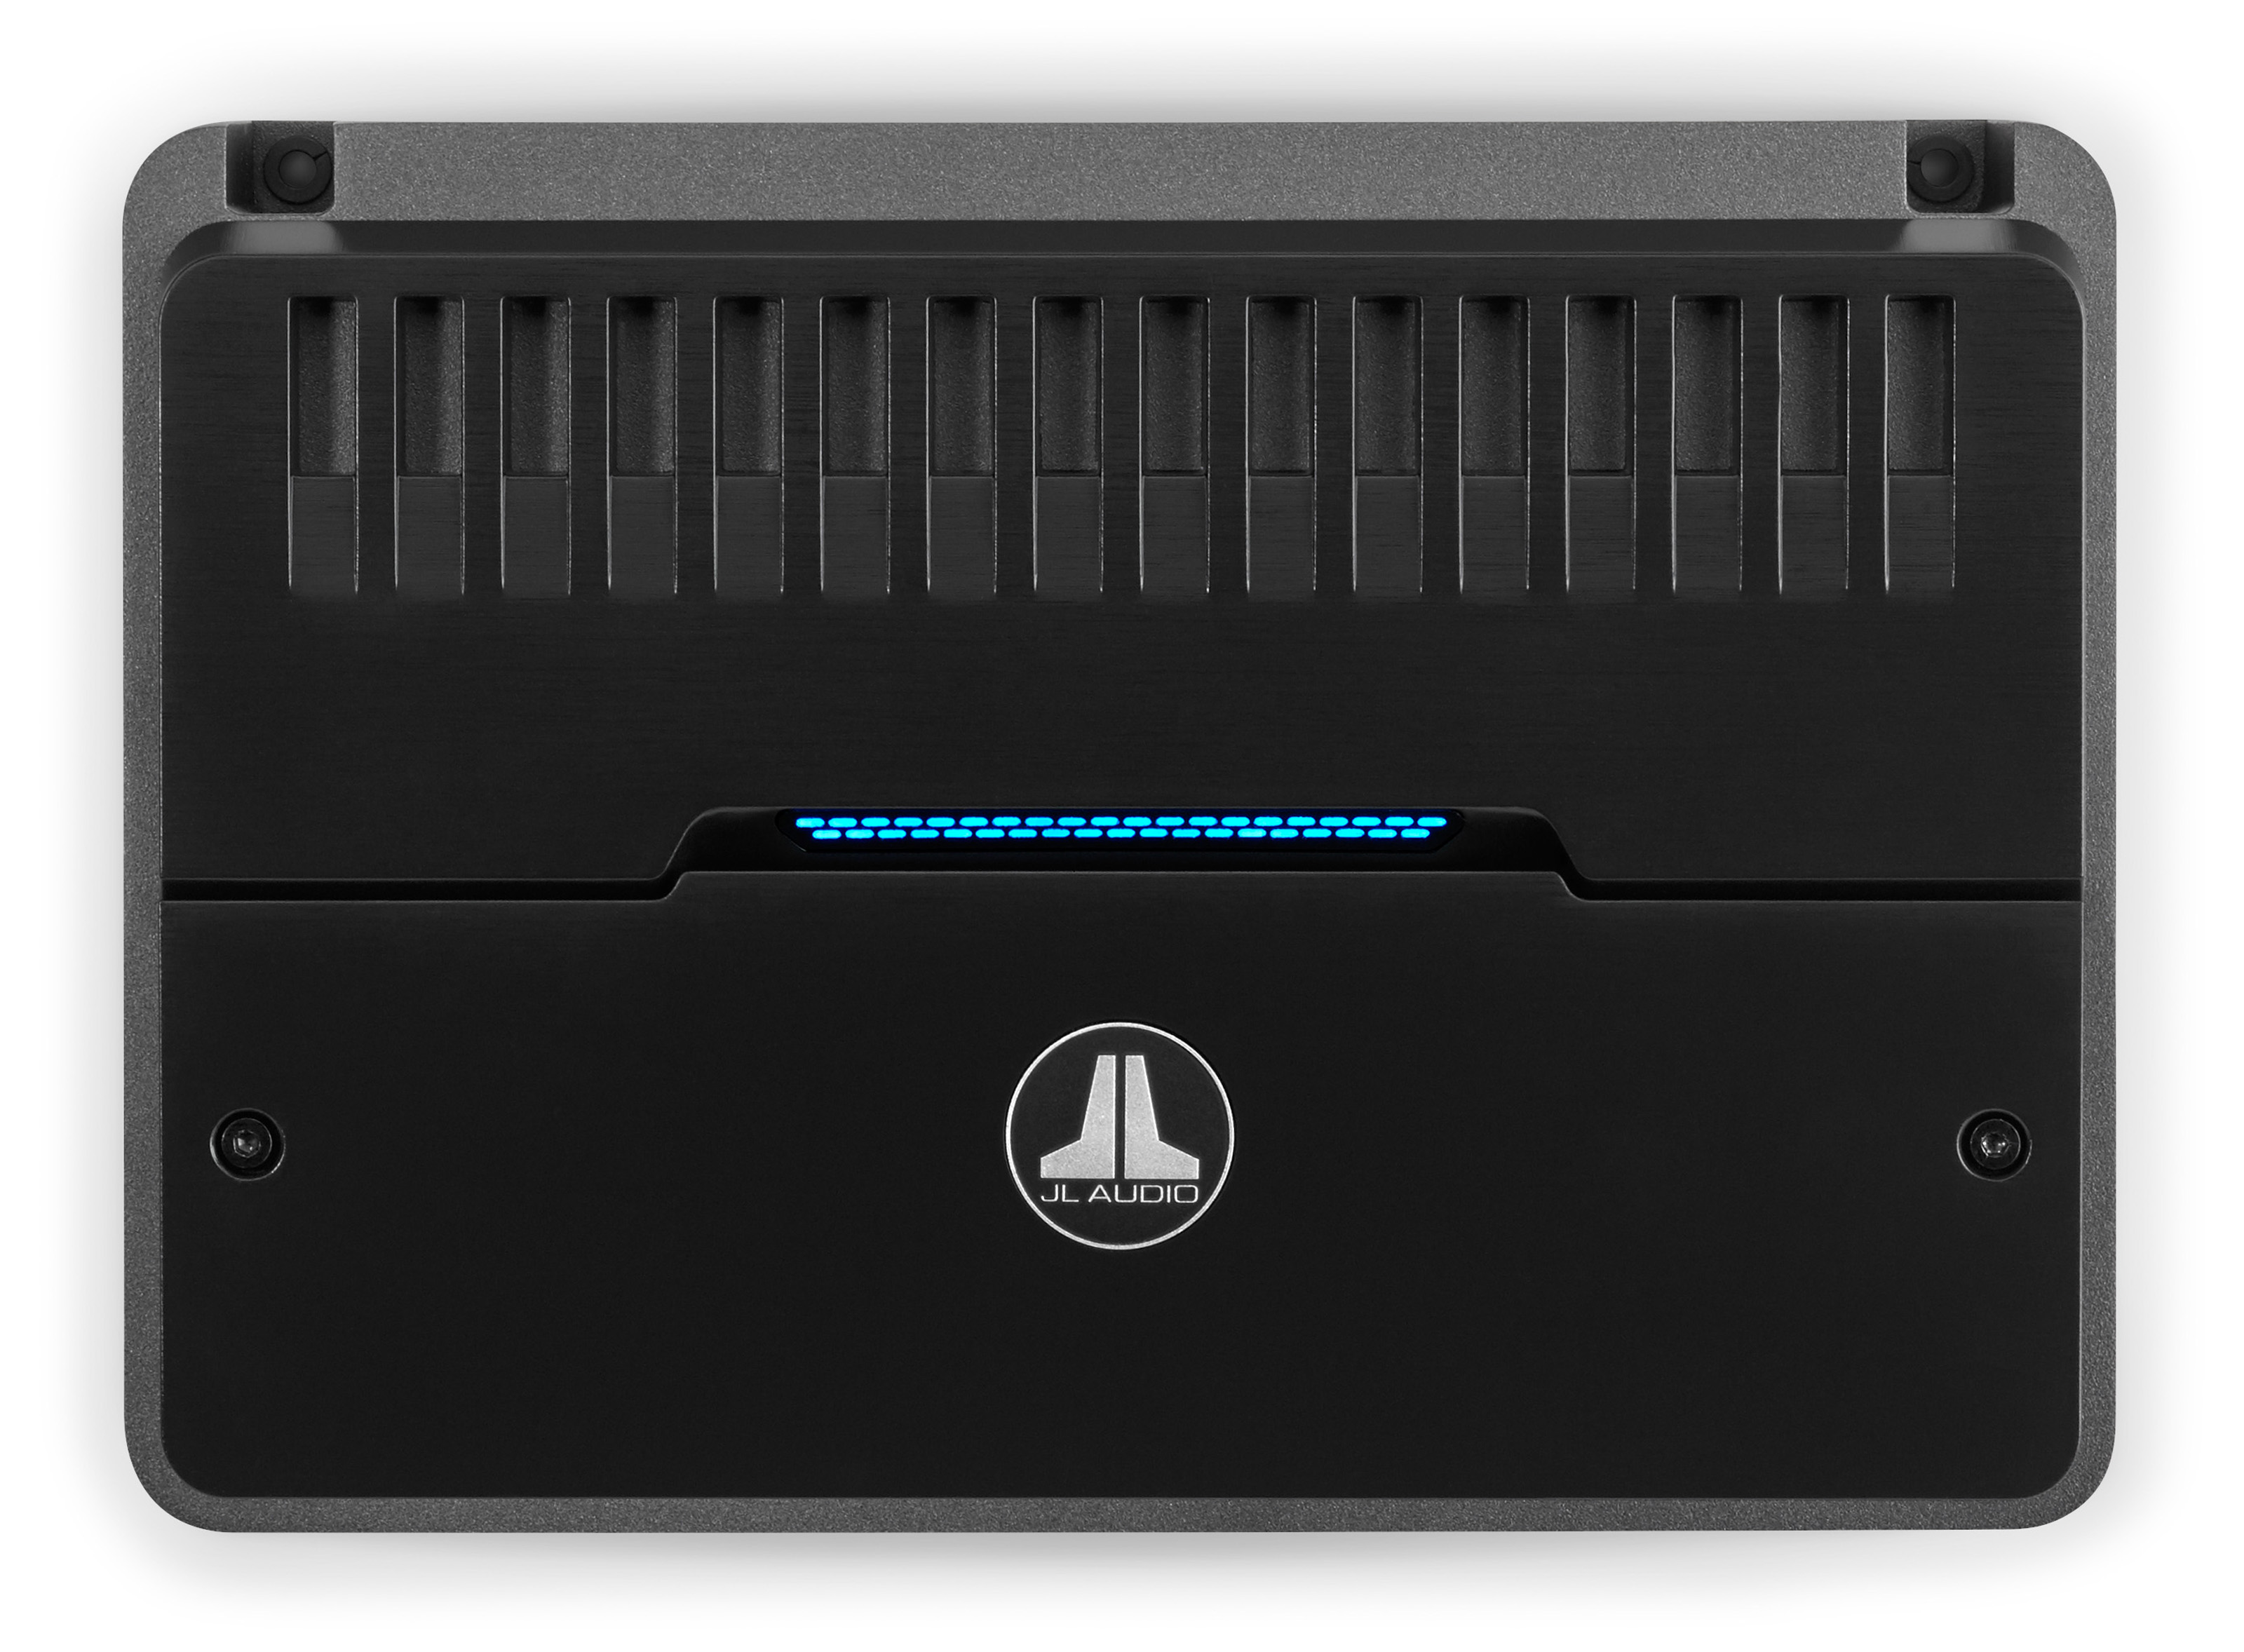 Pasmag performance auto and sound jl audio rd4004 amplifier review jl audio rd400 4 photo rd400 4 foh falaconquin